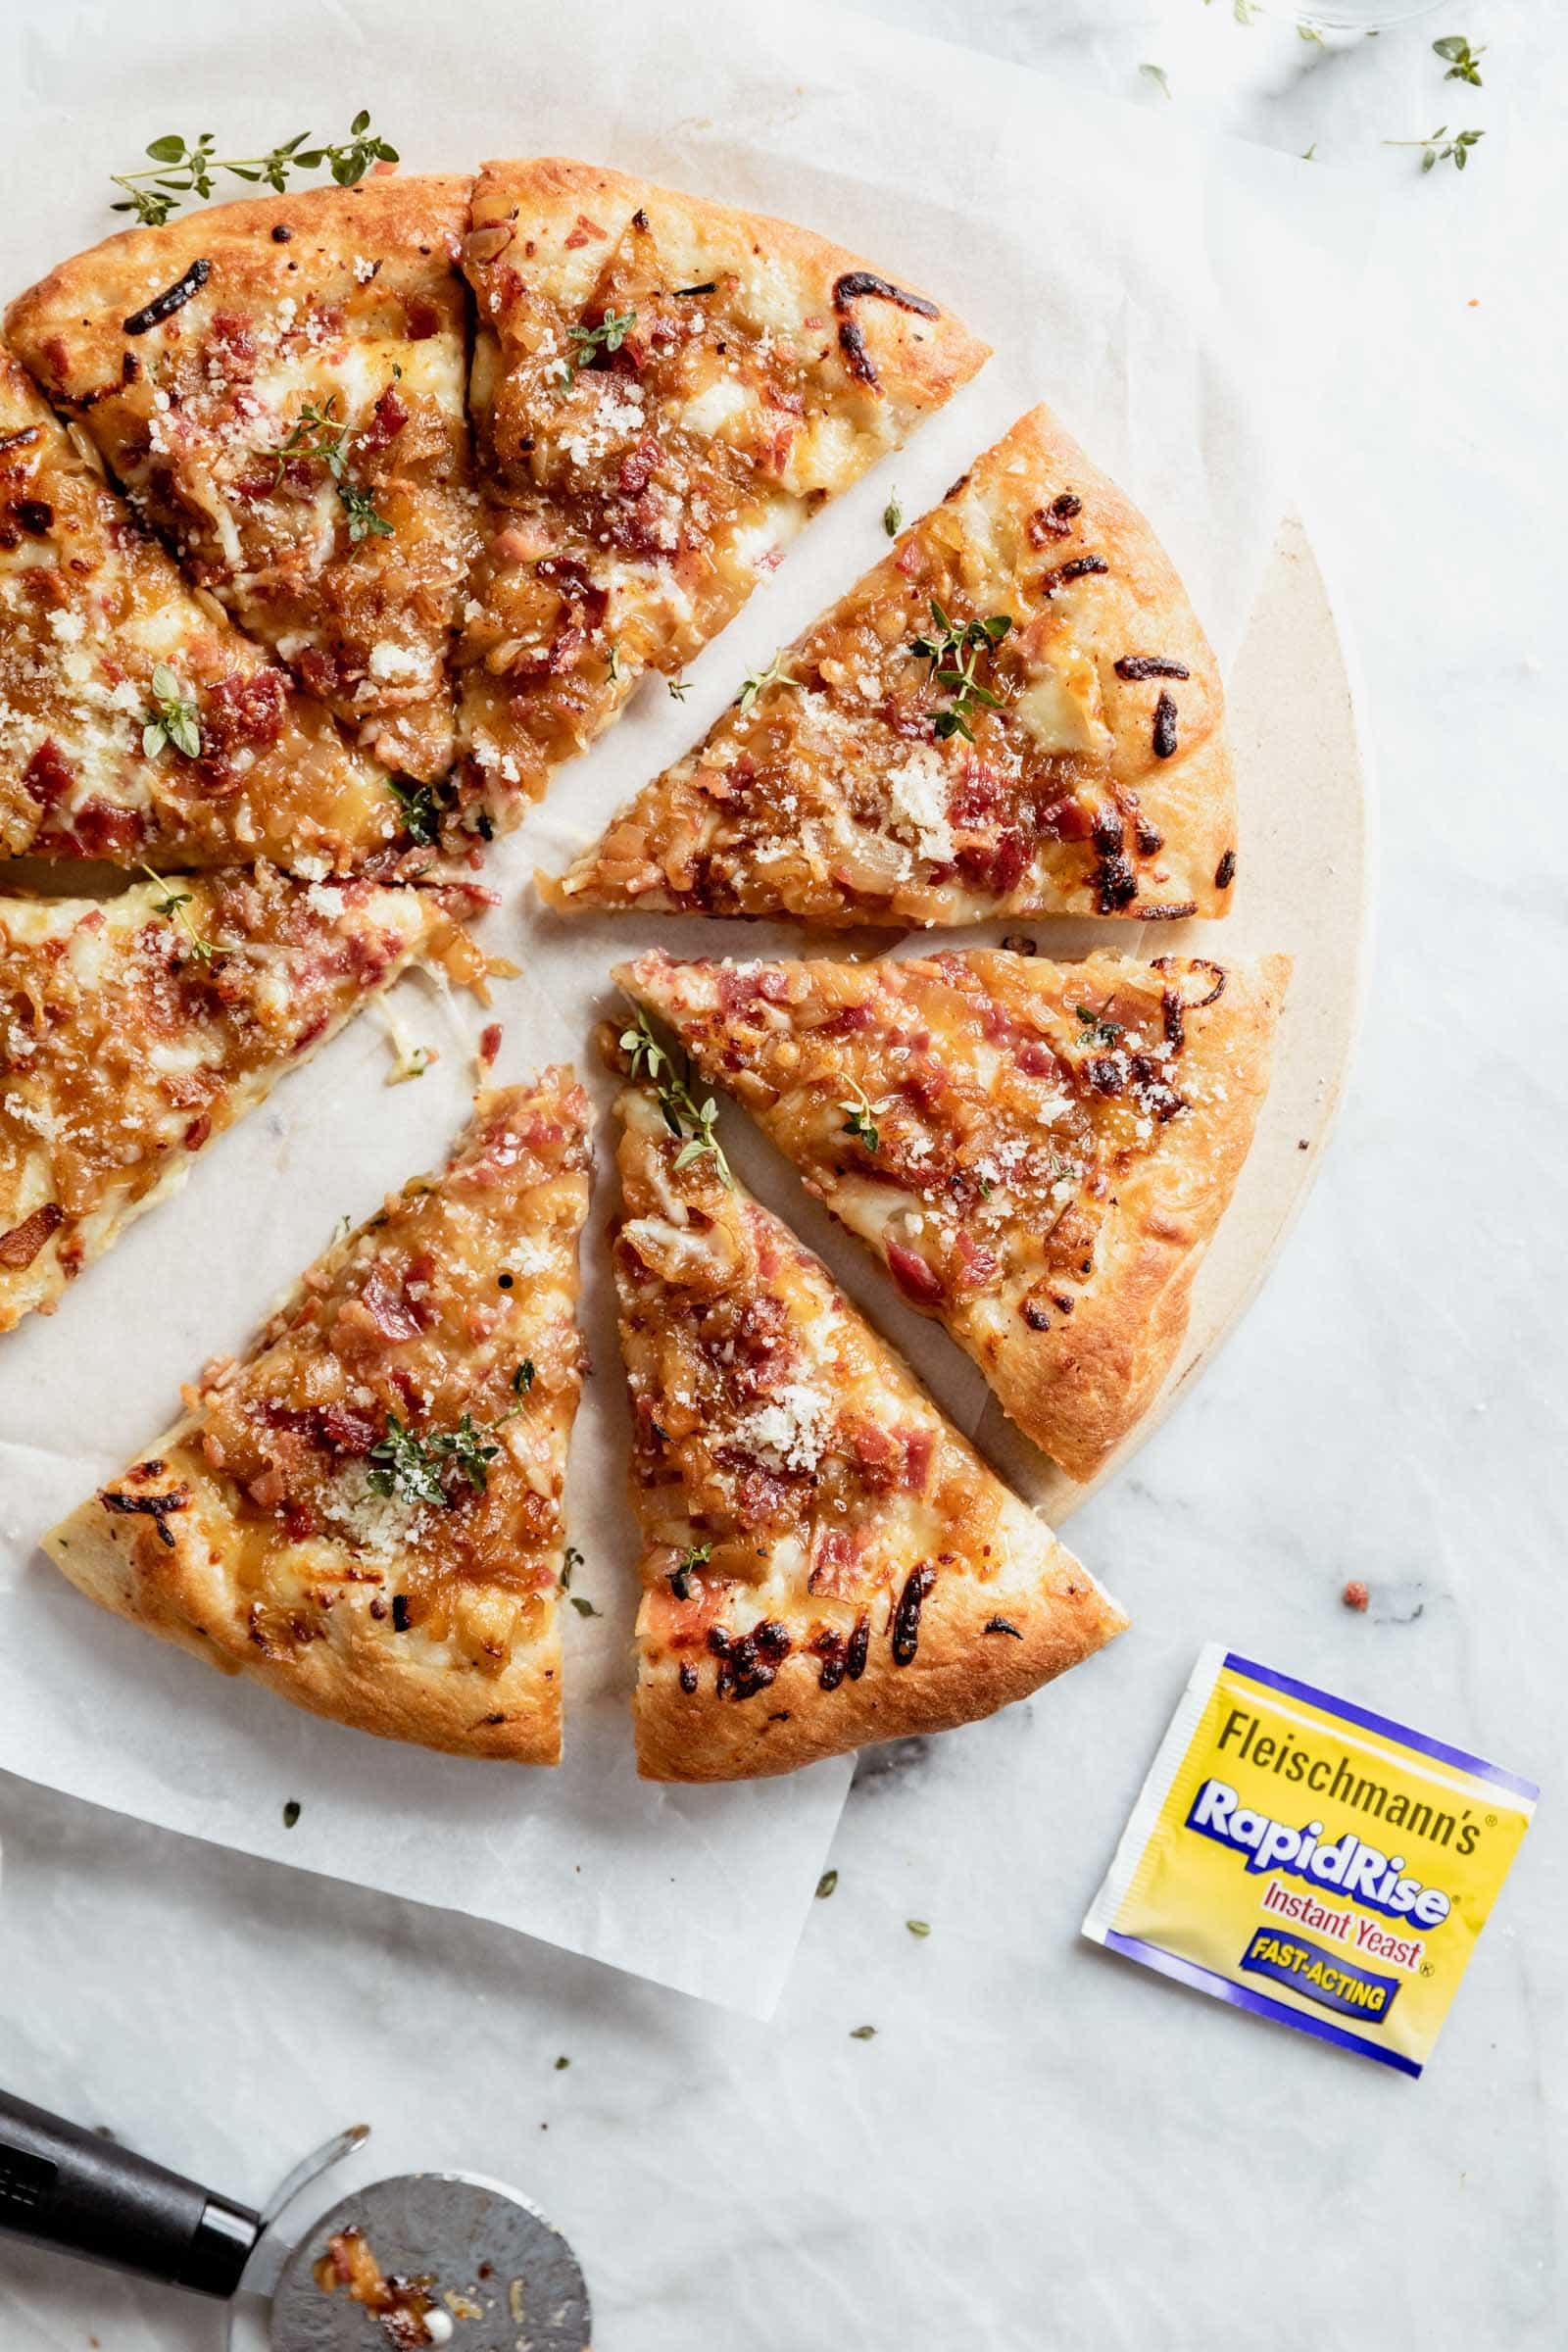 caramelized onion bacon and gruyere pizza with pizza cutter and rapid rise yeast